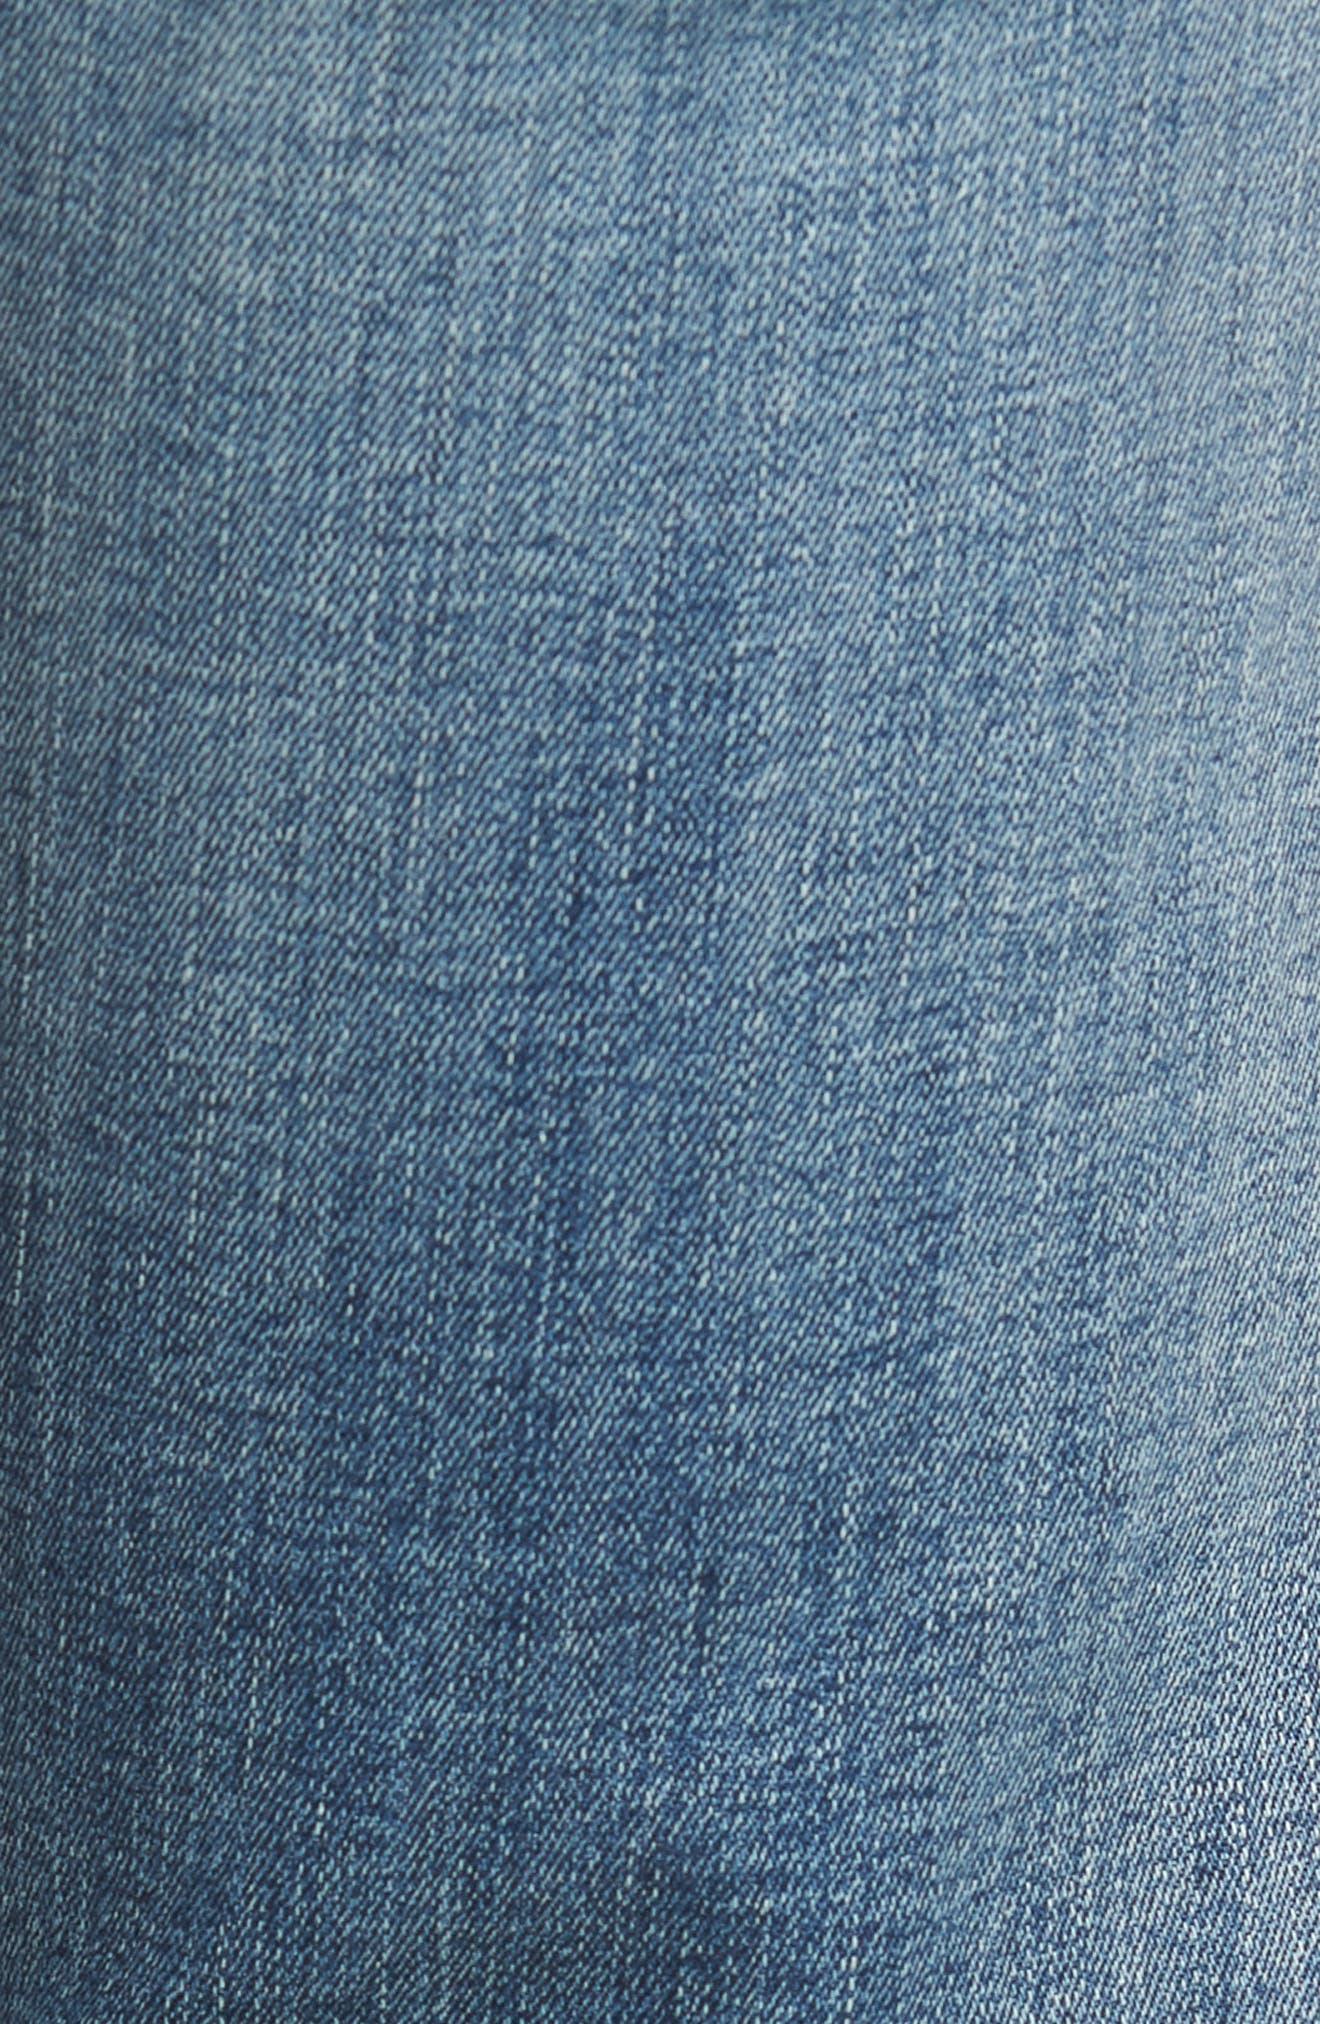 Stanton Straight Leg Jeans,                             Alternate thumbnail 5, color,                             COLD ONE